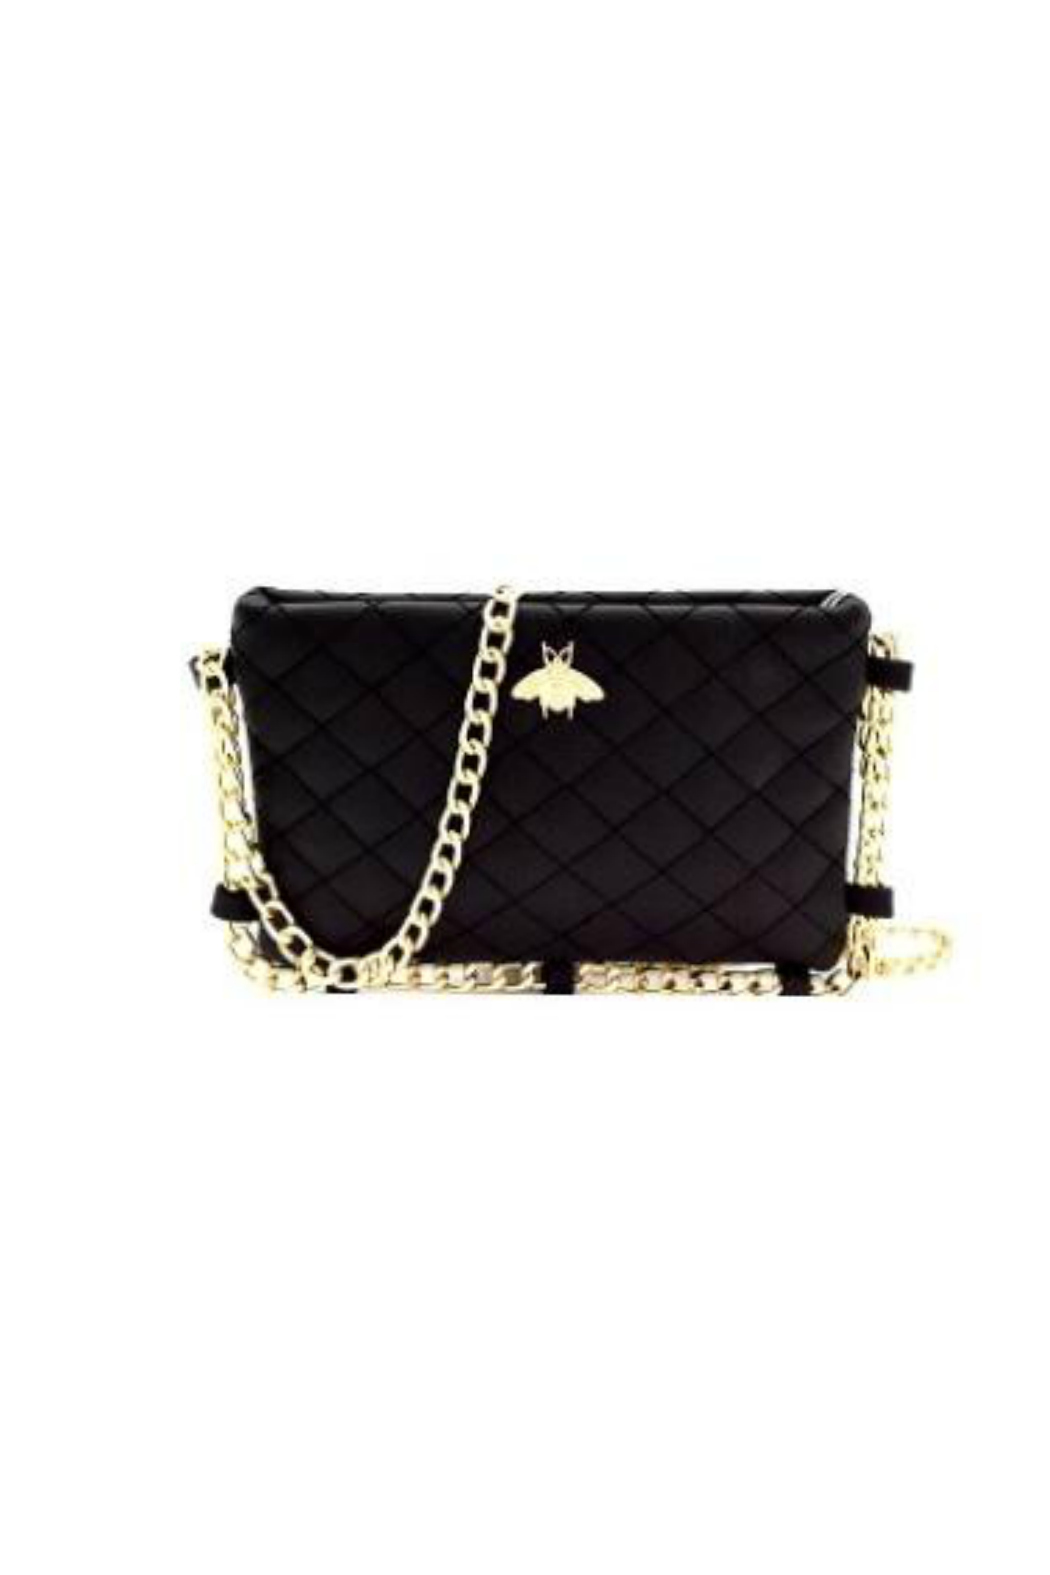 Gift Girl Quilted bee crossbody with gold chain strap - Main Image